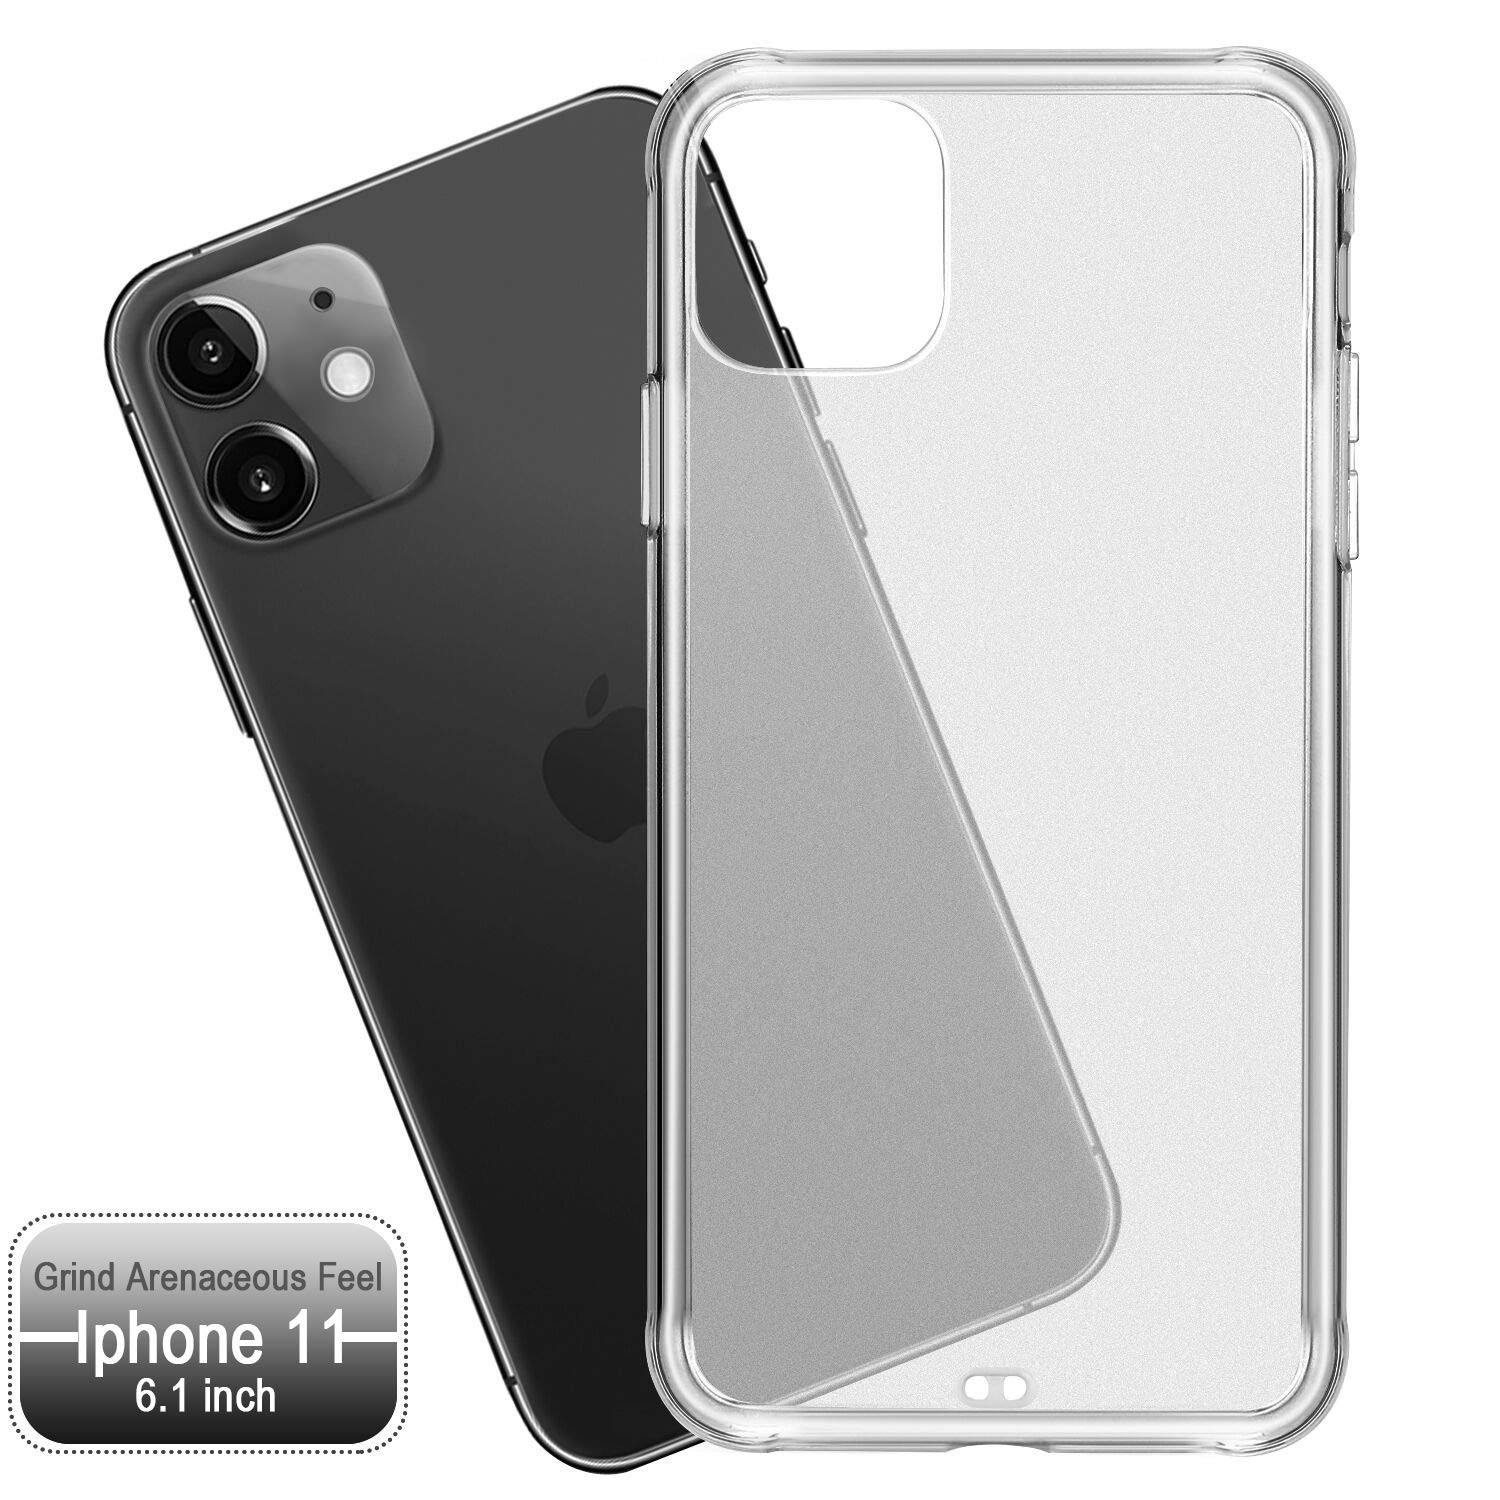 ORIbox Case for iPhone 11, Translucent Matte case with Soft Edges, Shockproof and Anti-Drop Protection Case Designed for iPhone 11, Clear